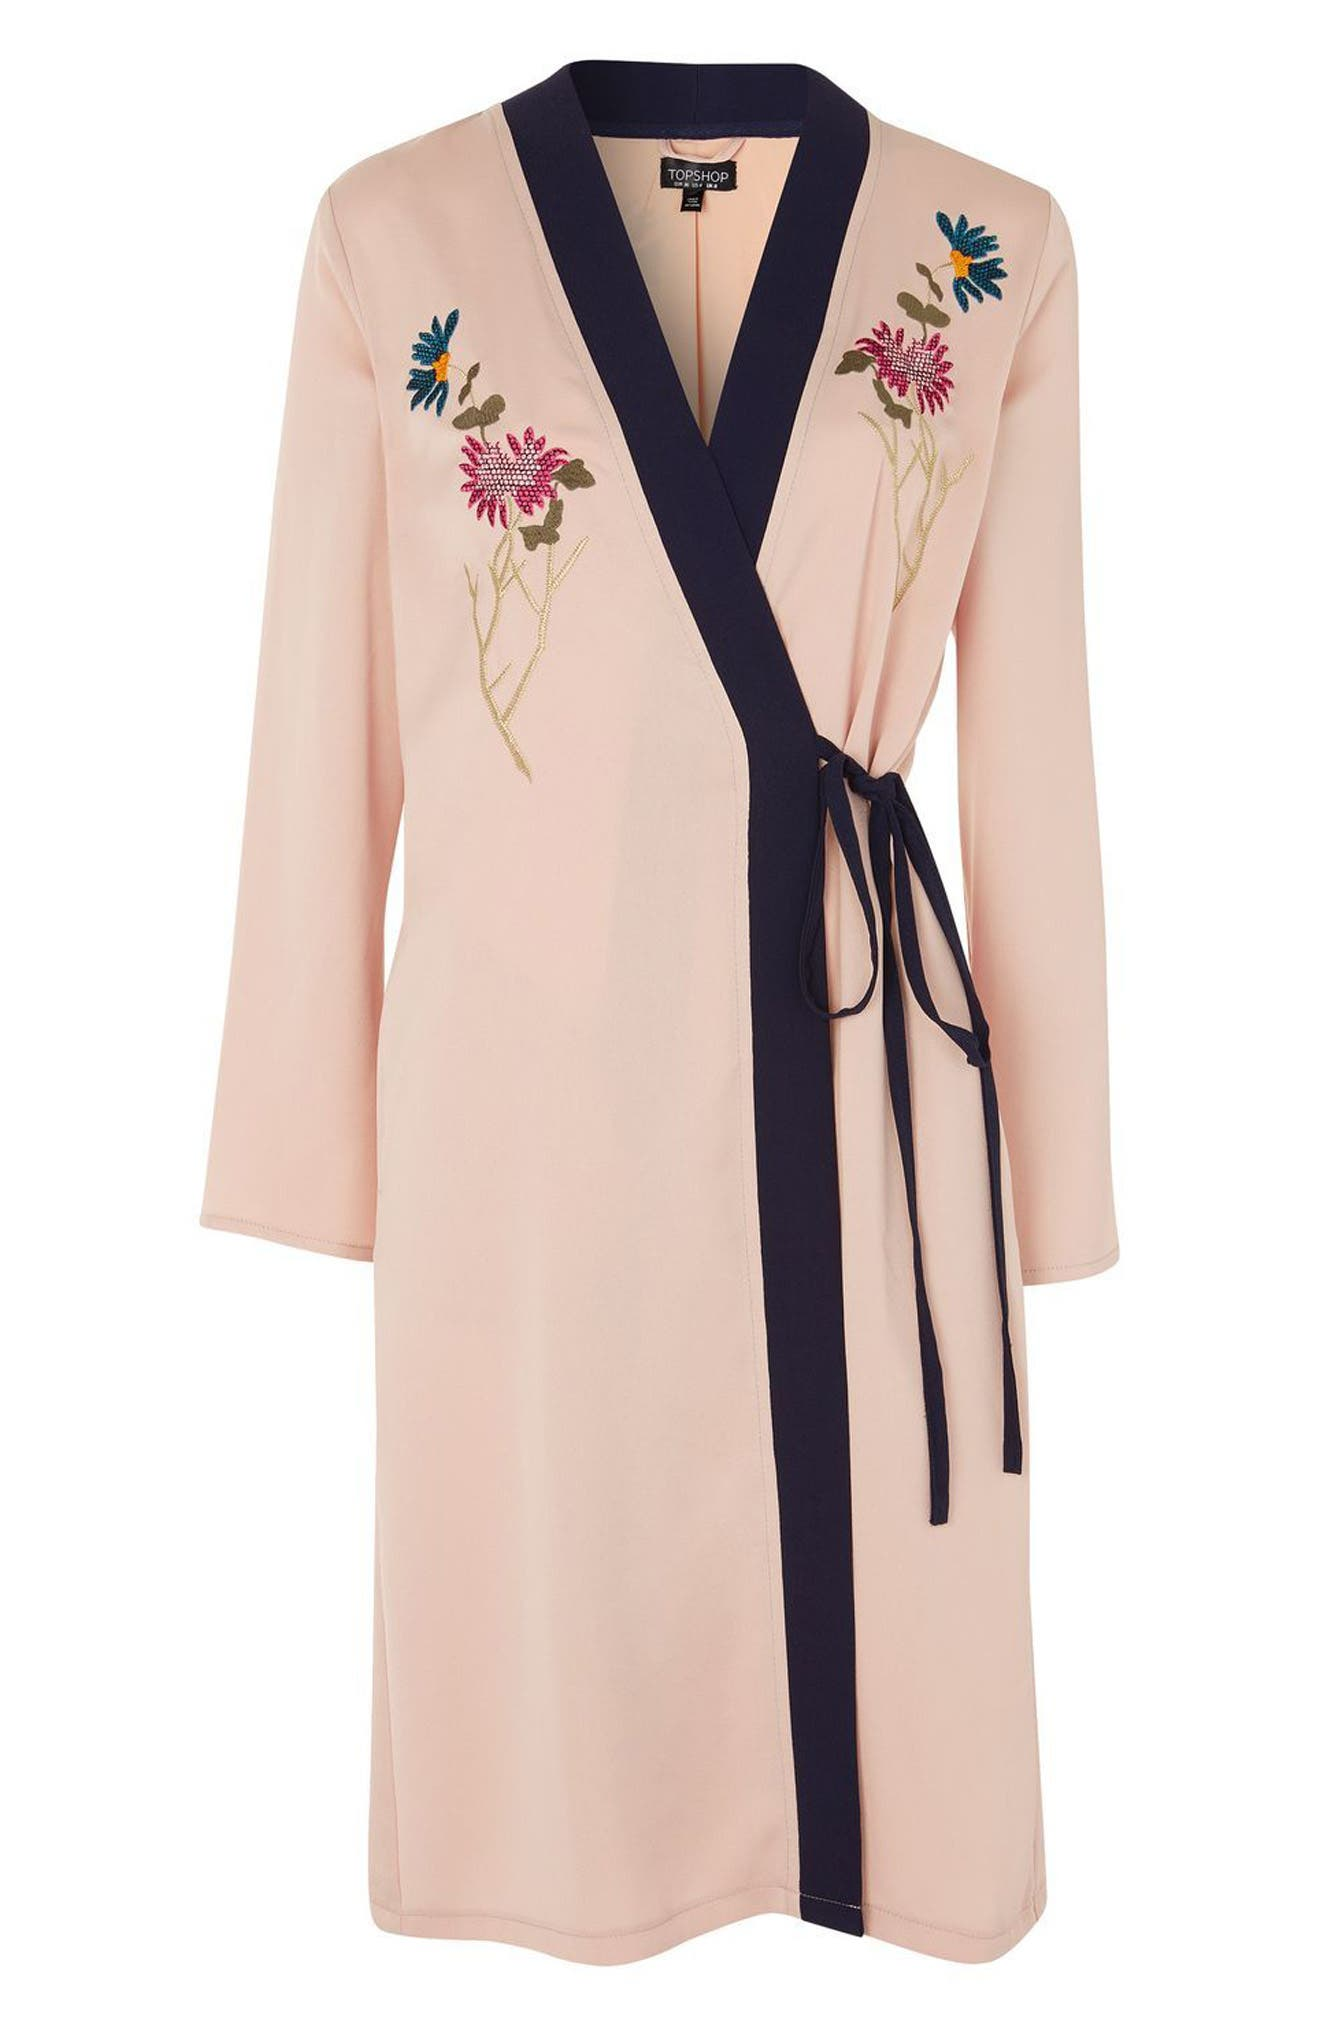 Tiger Embroidered Duster Coat,                             Alternate thumbnail 4, color,                             250